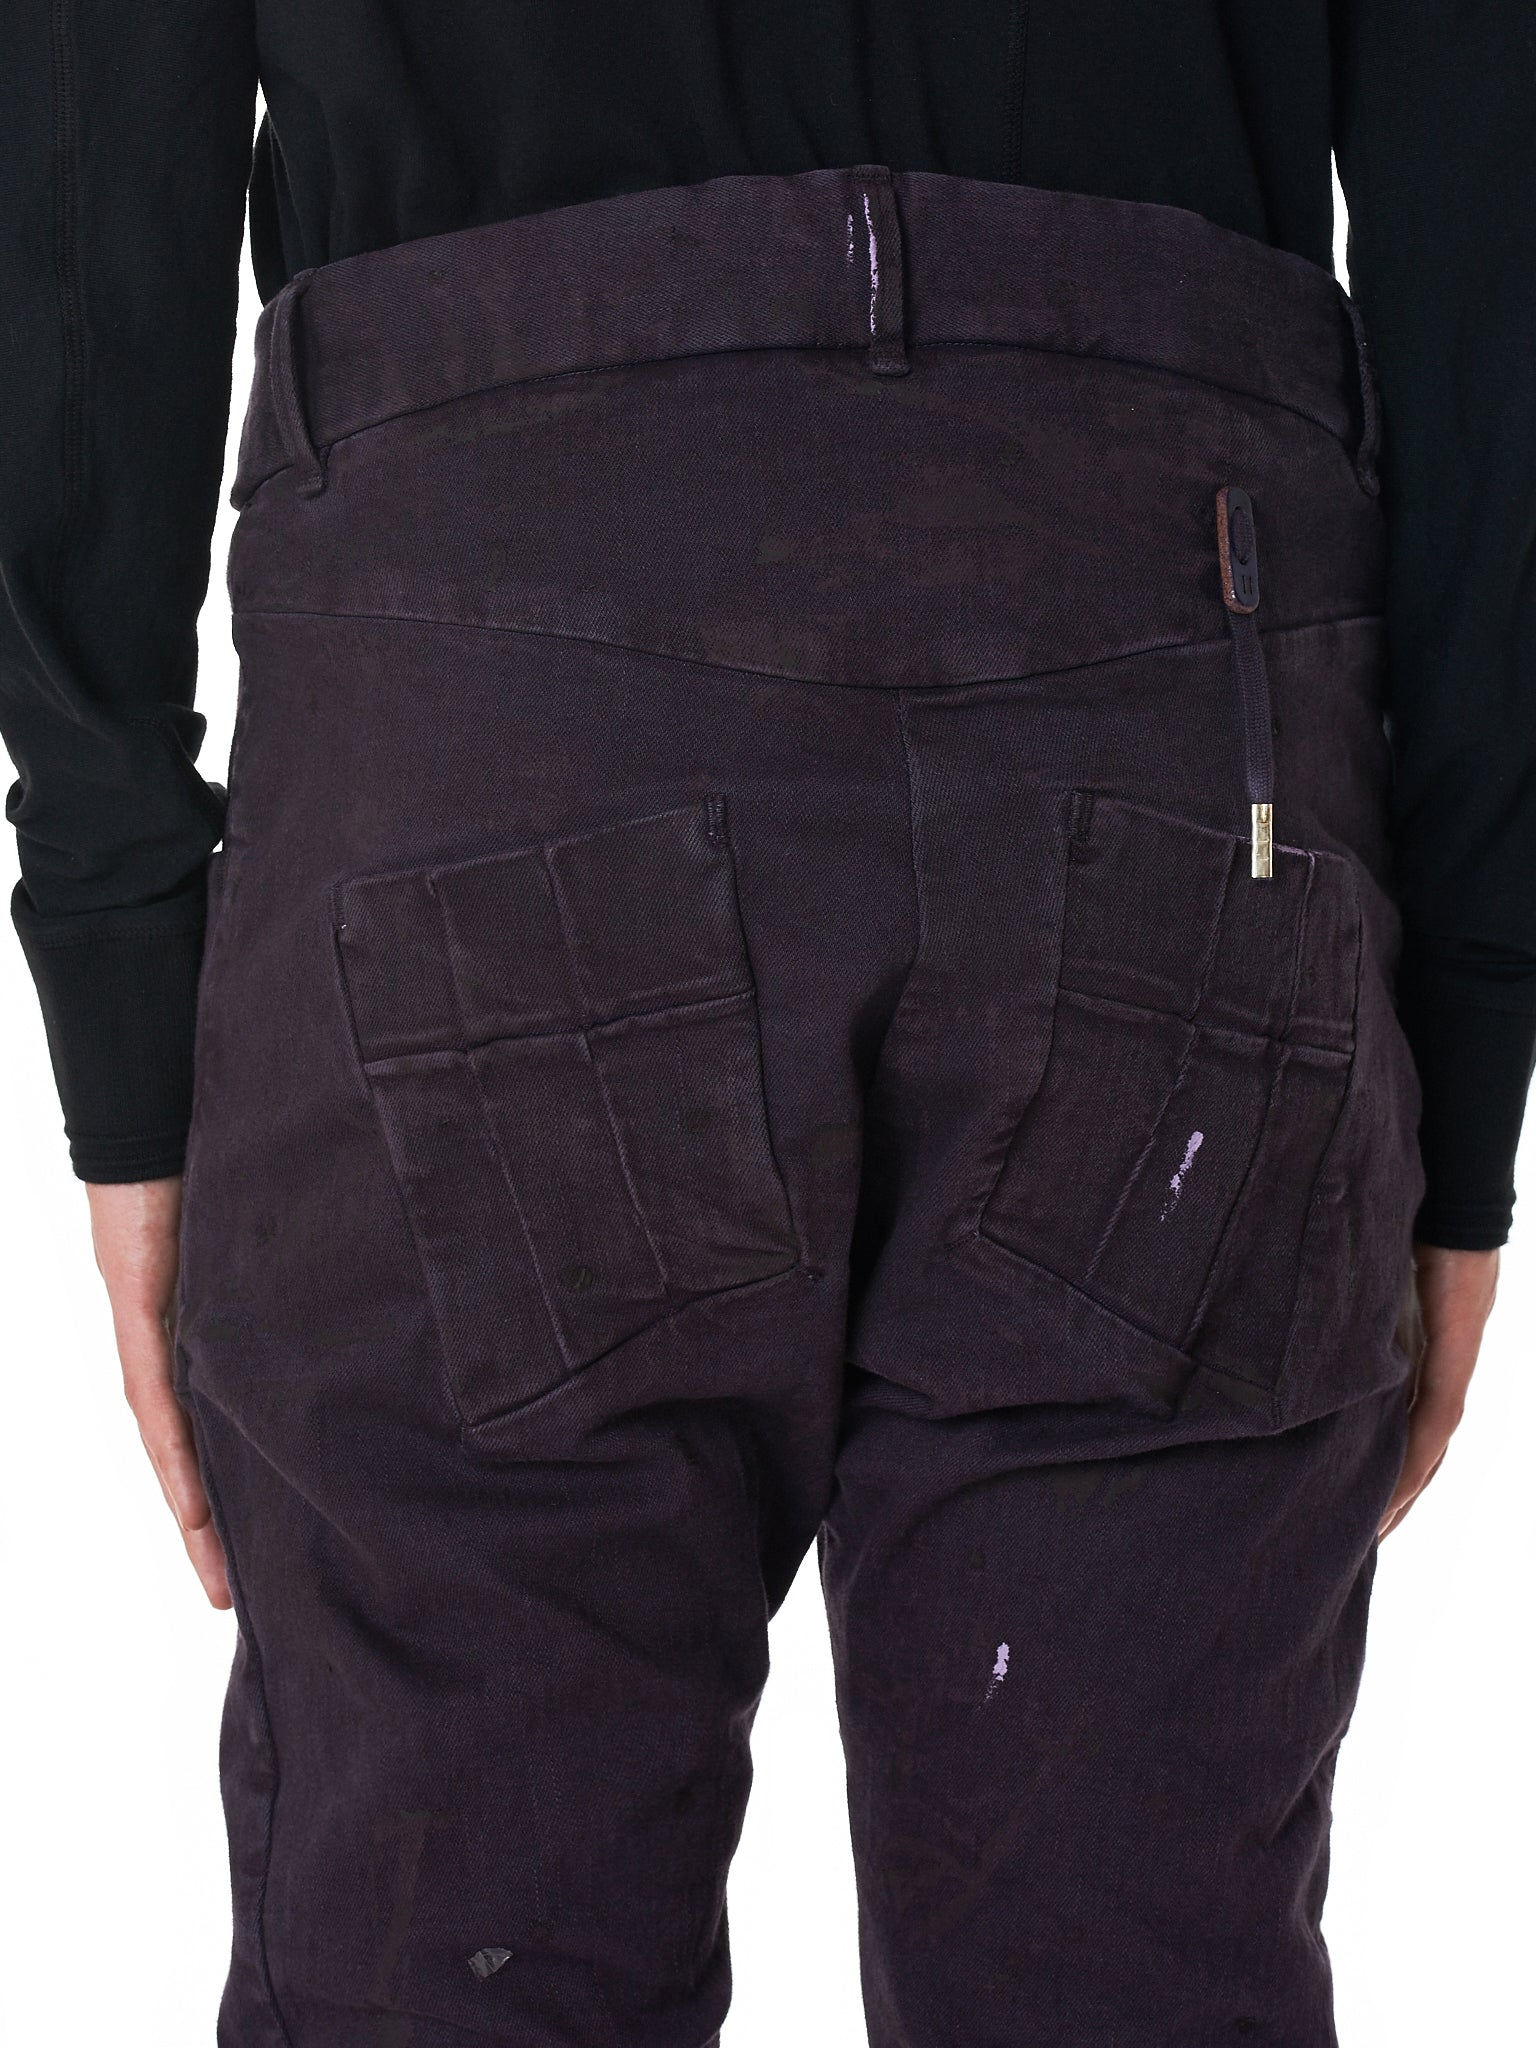 Boris Bidjan Saberi 'P13' Purple Denim - Hlorenzo Detail 3